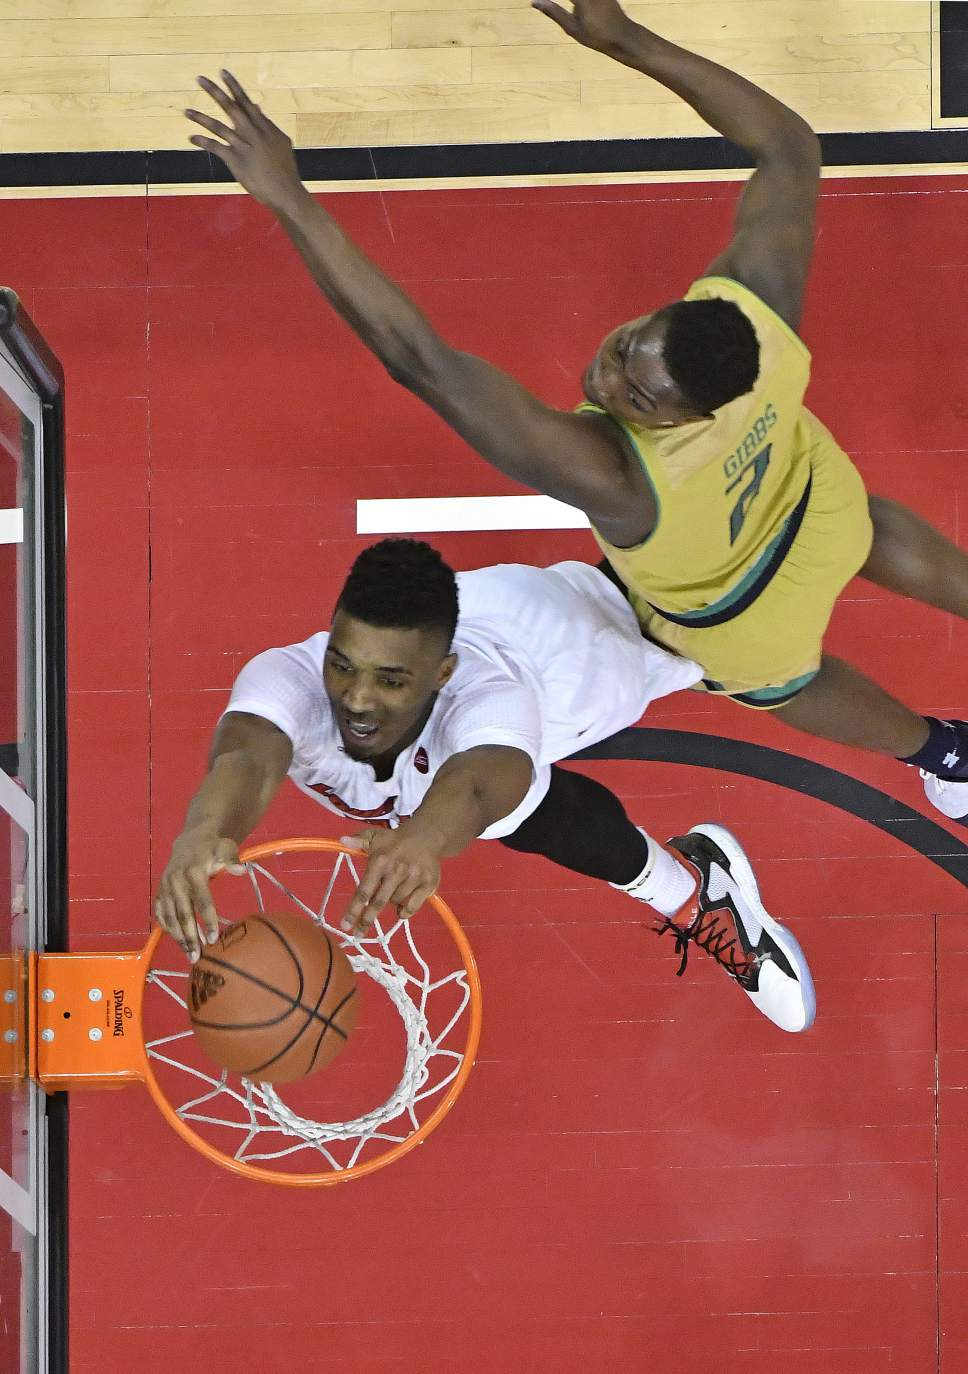 Louisville's Donovan Mitchell (45) dunks past the defense of Notre Dame's T.J. Gibbs (2) during the second half of an NCAA college basketball game, Saturday, March 4, 2017, in Louisville, Ky. Louisville won 71-64. (AP Photo/Timothy D. Easley)